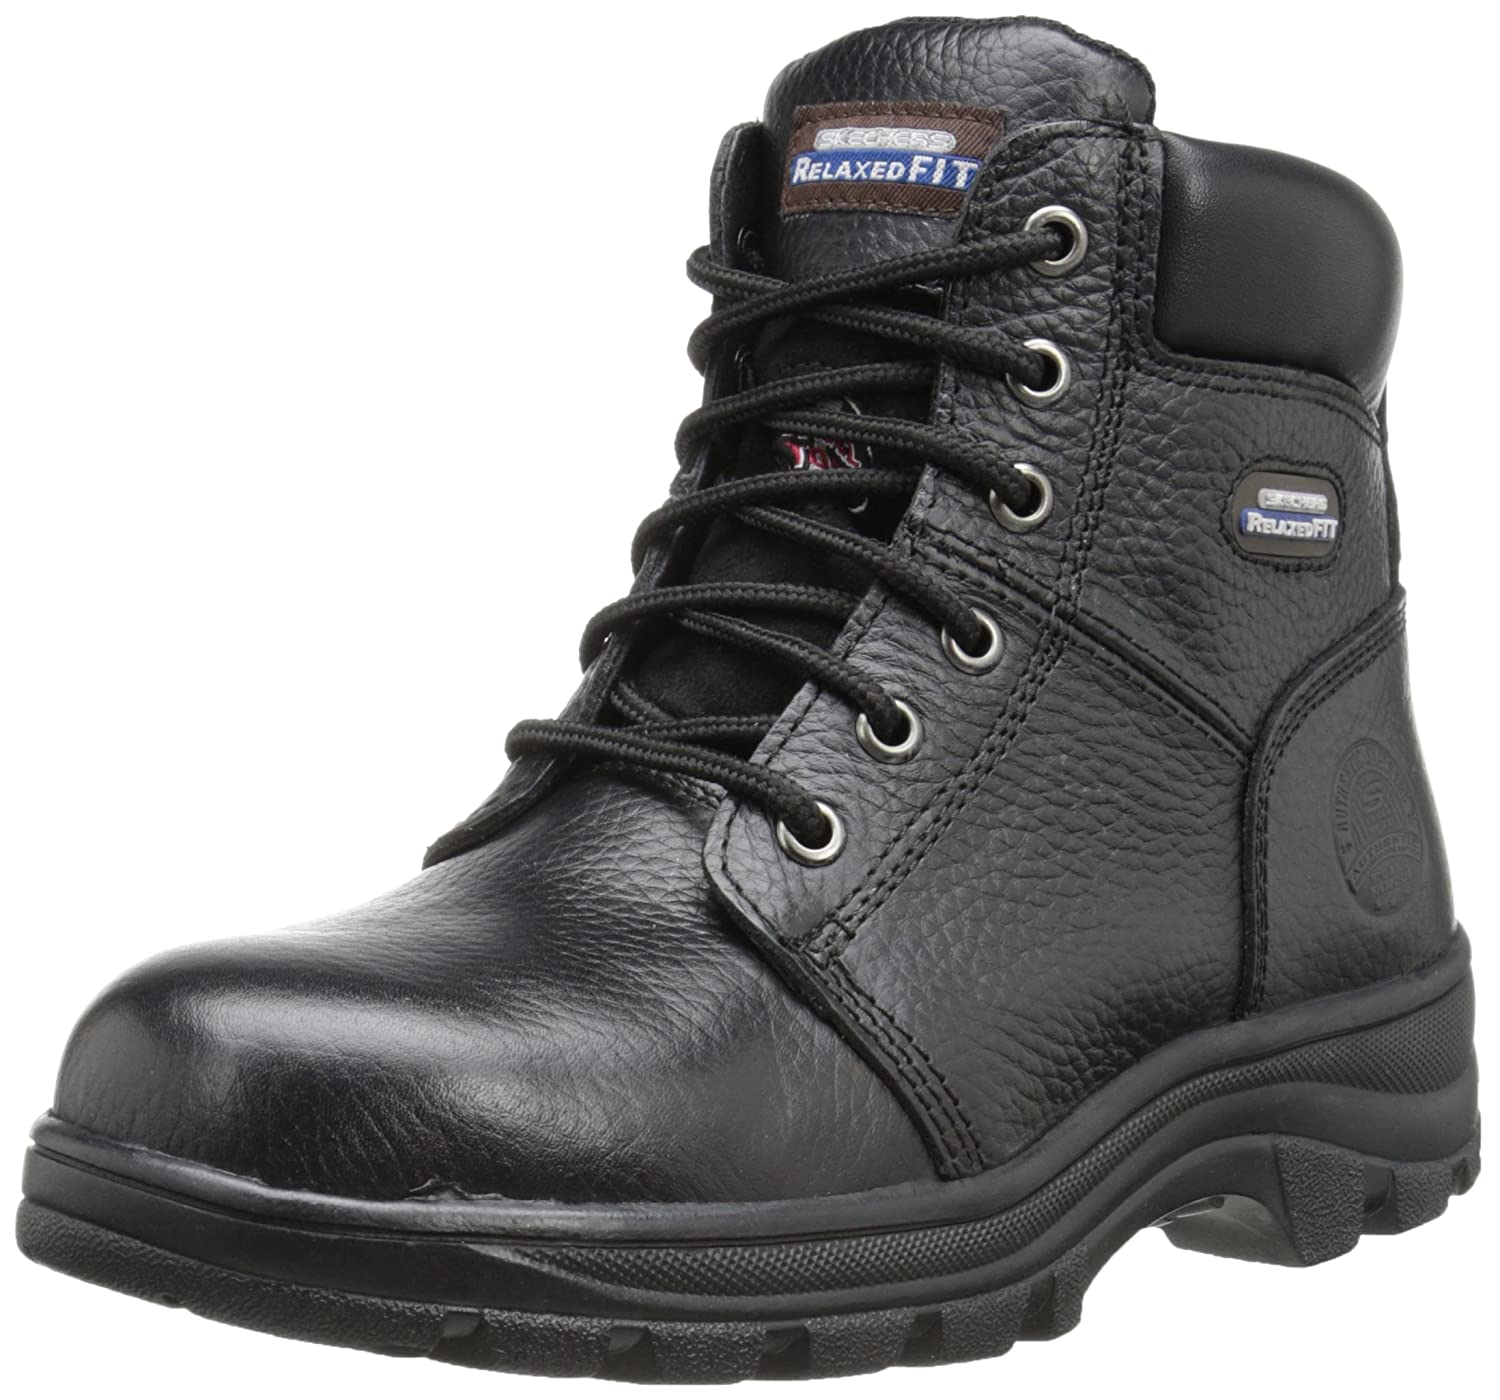 Skechers fAtilde;frac14;r Arbeit 76.561 Workshire Peril Stiefel  36 EU|Black